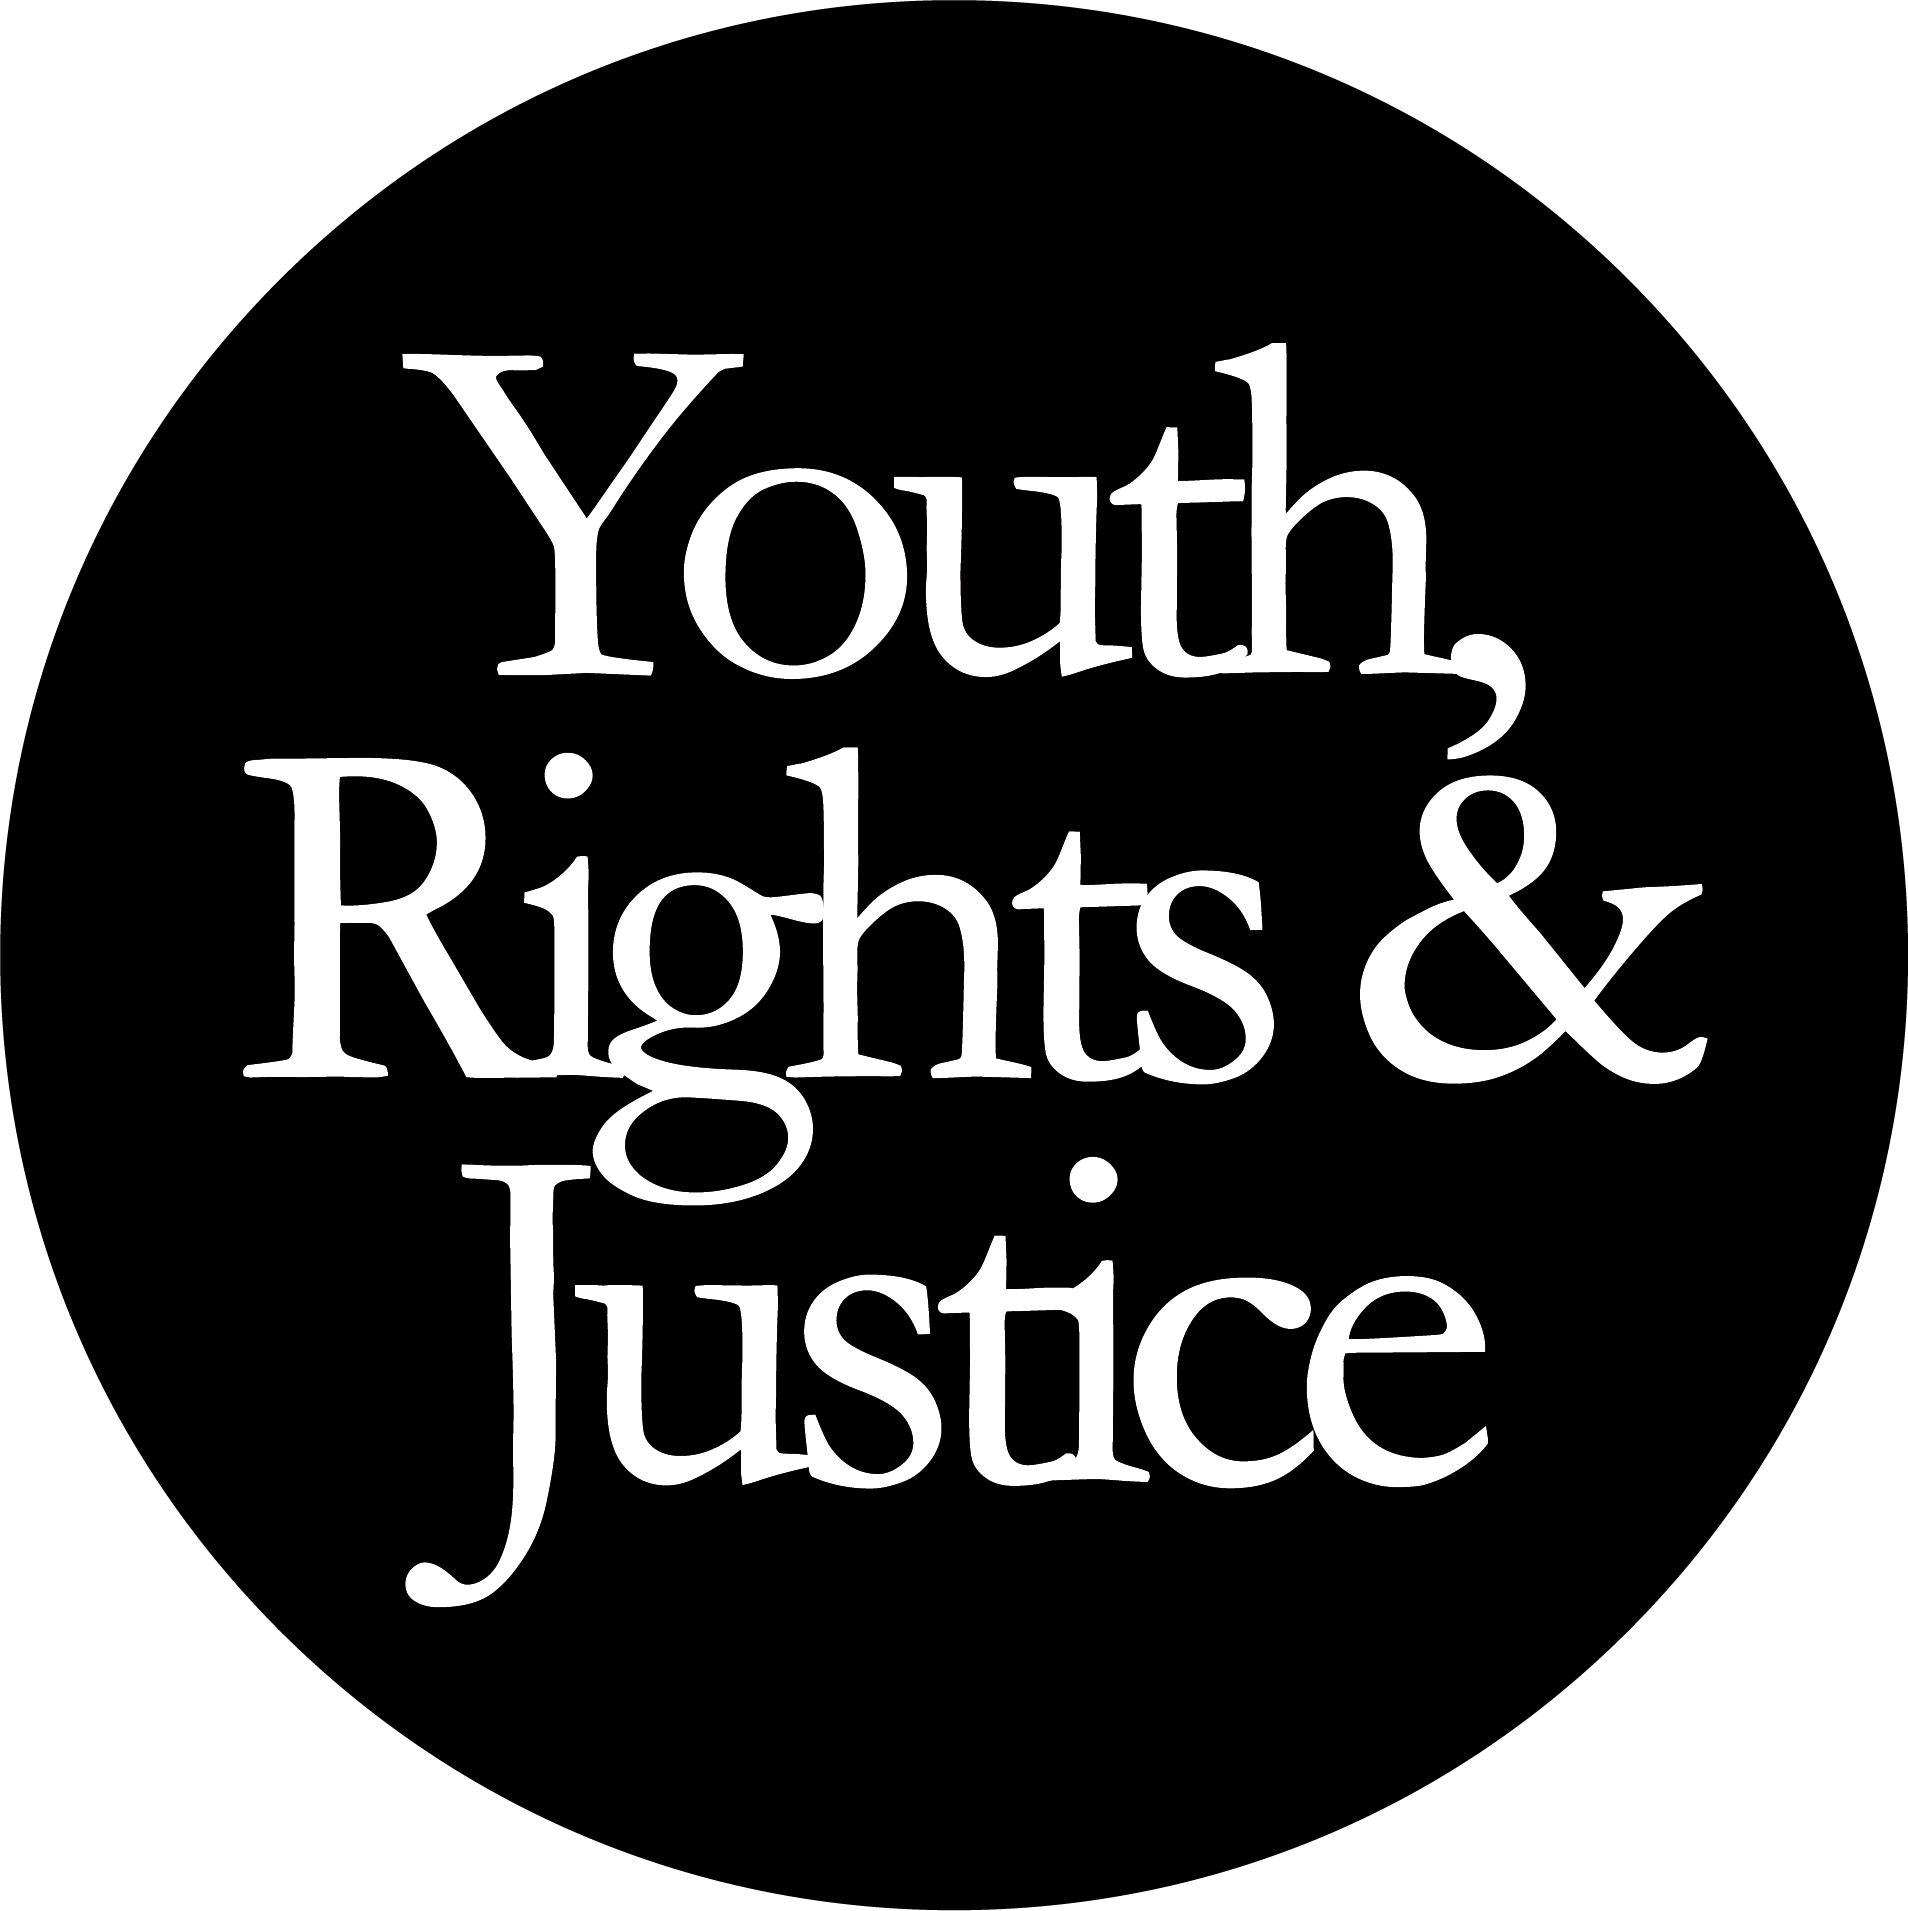 youthrightsjustice